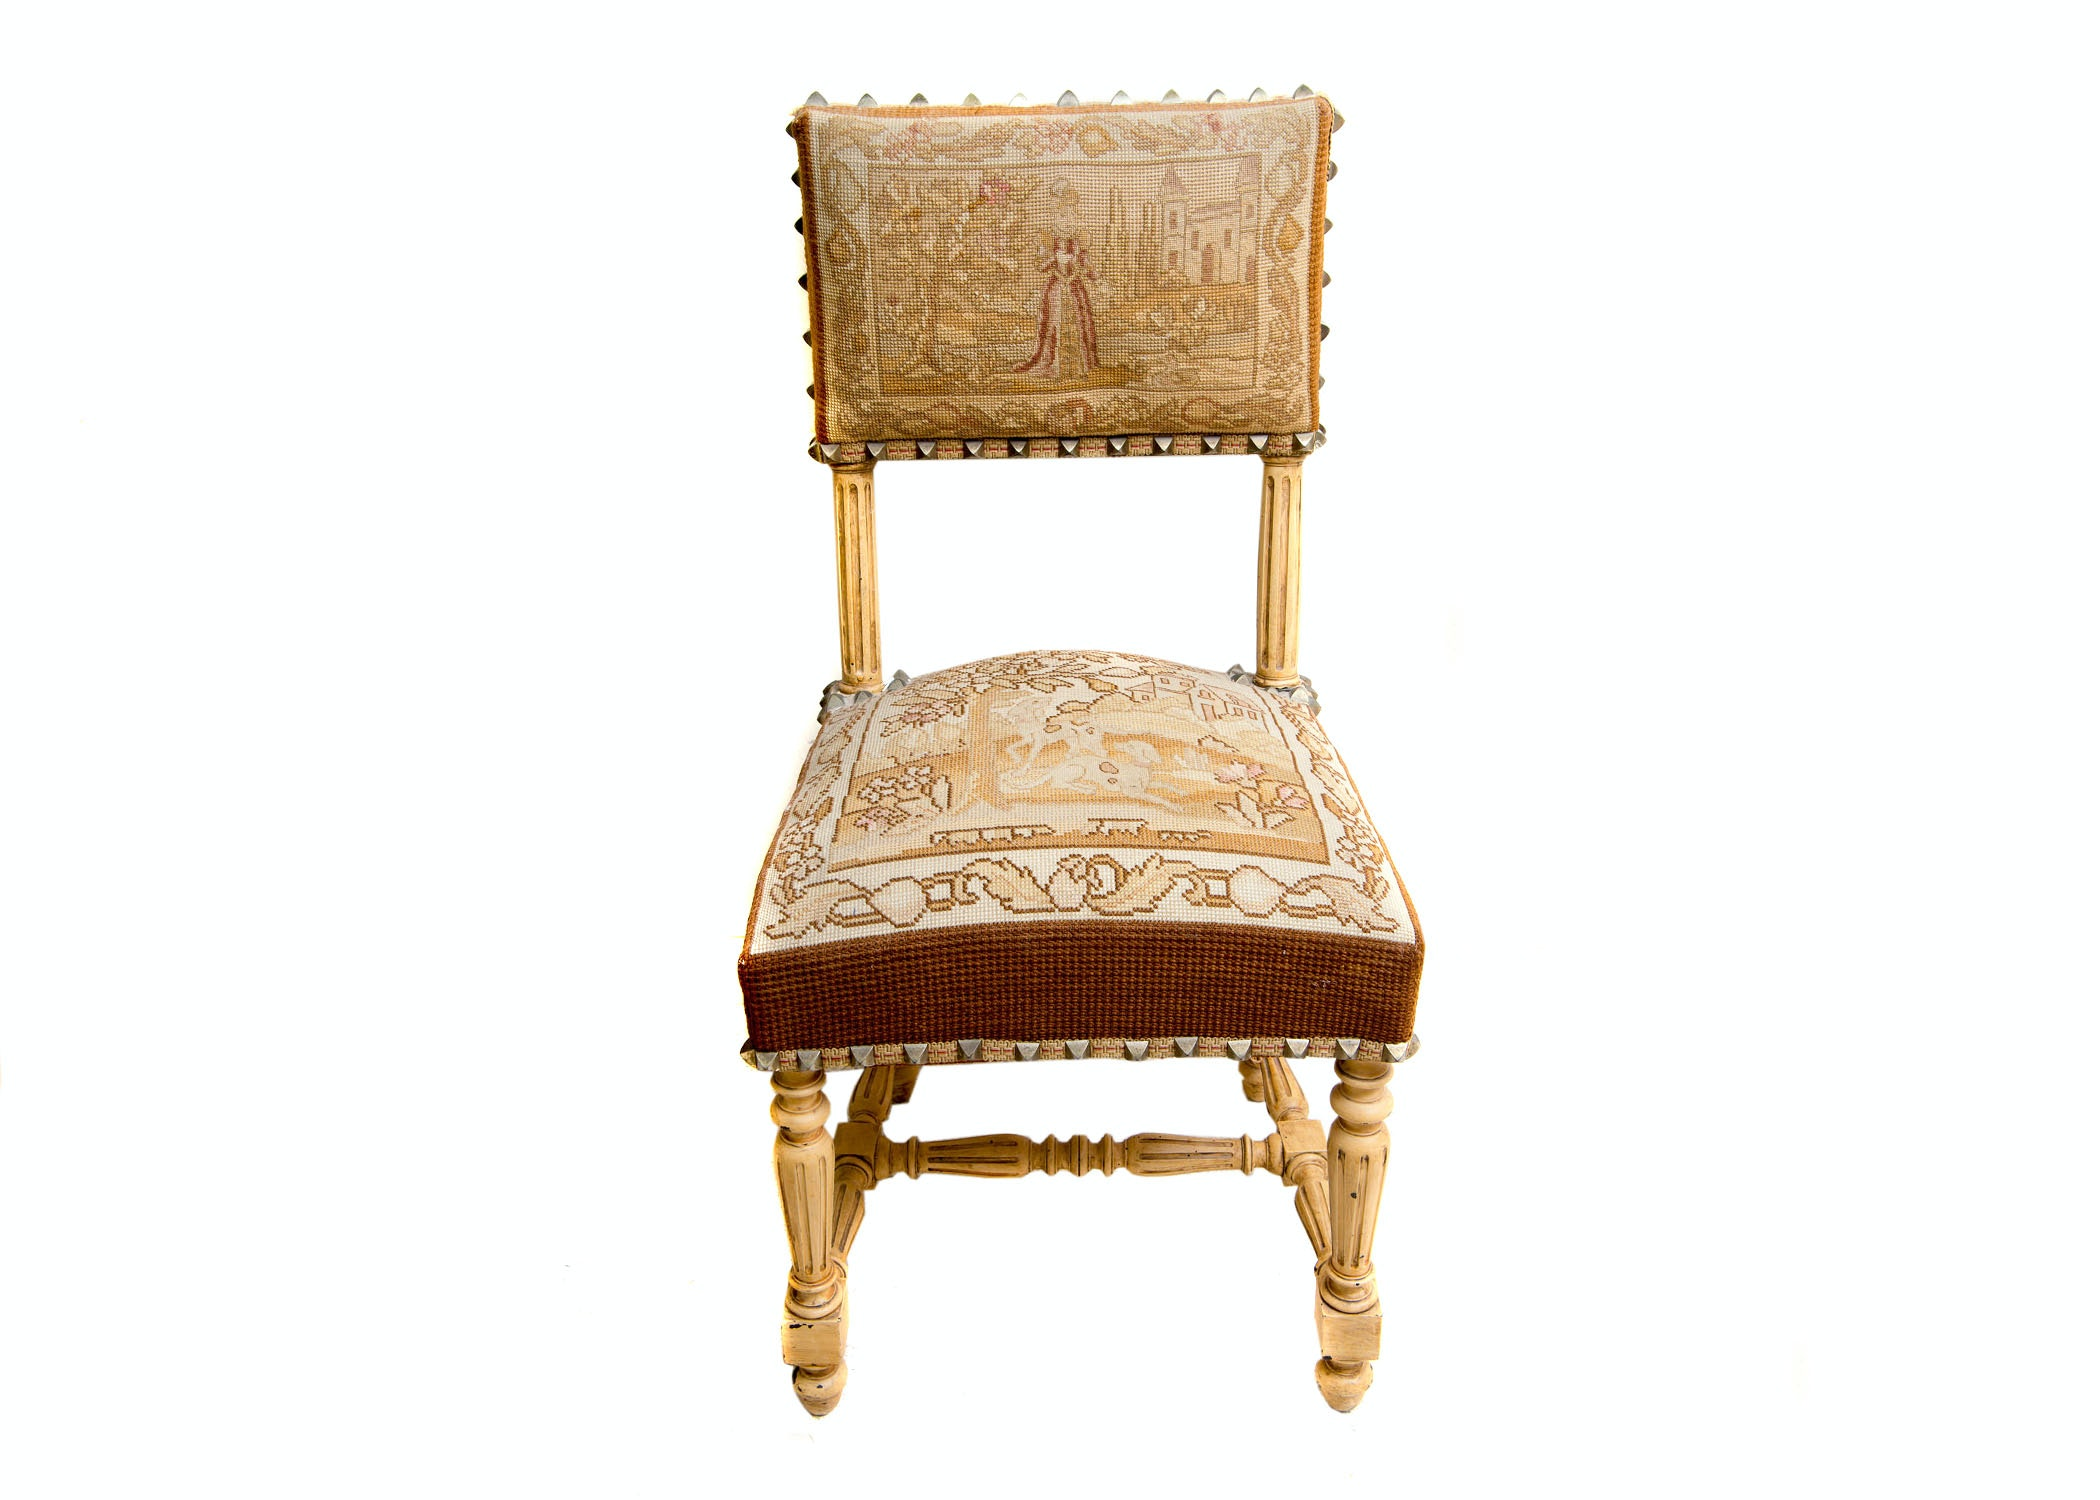 Antique Louis XVI Style Tapestry Chair ...  sc 1 st  EBTH.com & Antique Louis XVI Style Tapestry Chair : EBTH